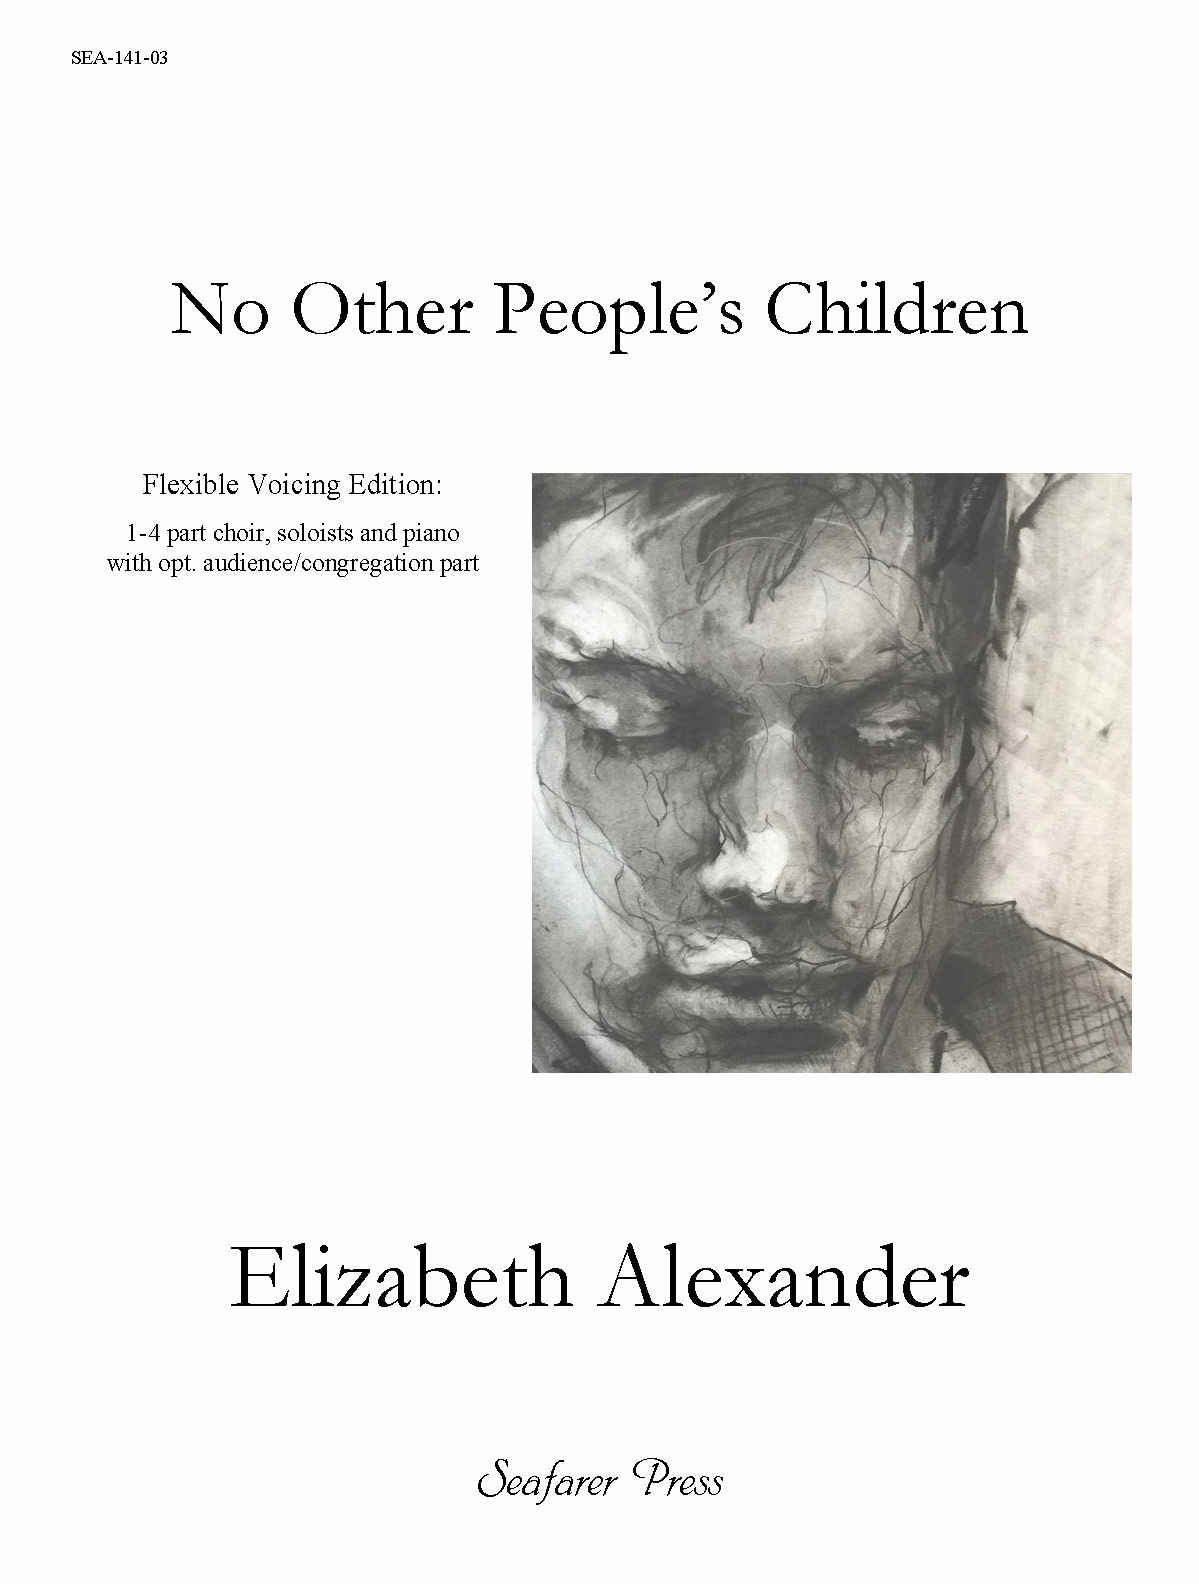 SEA-141-03 - No Other People's Children